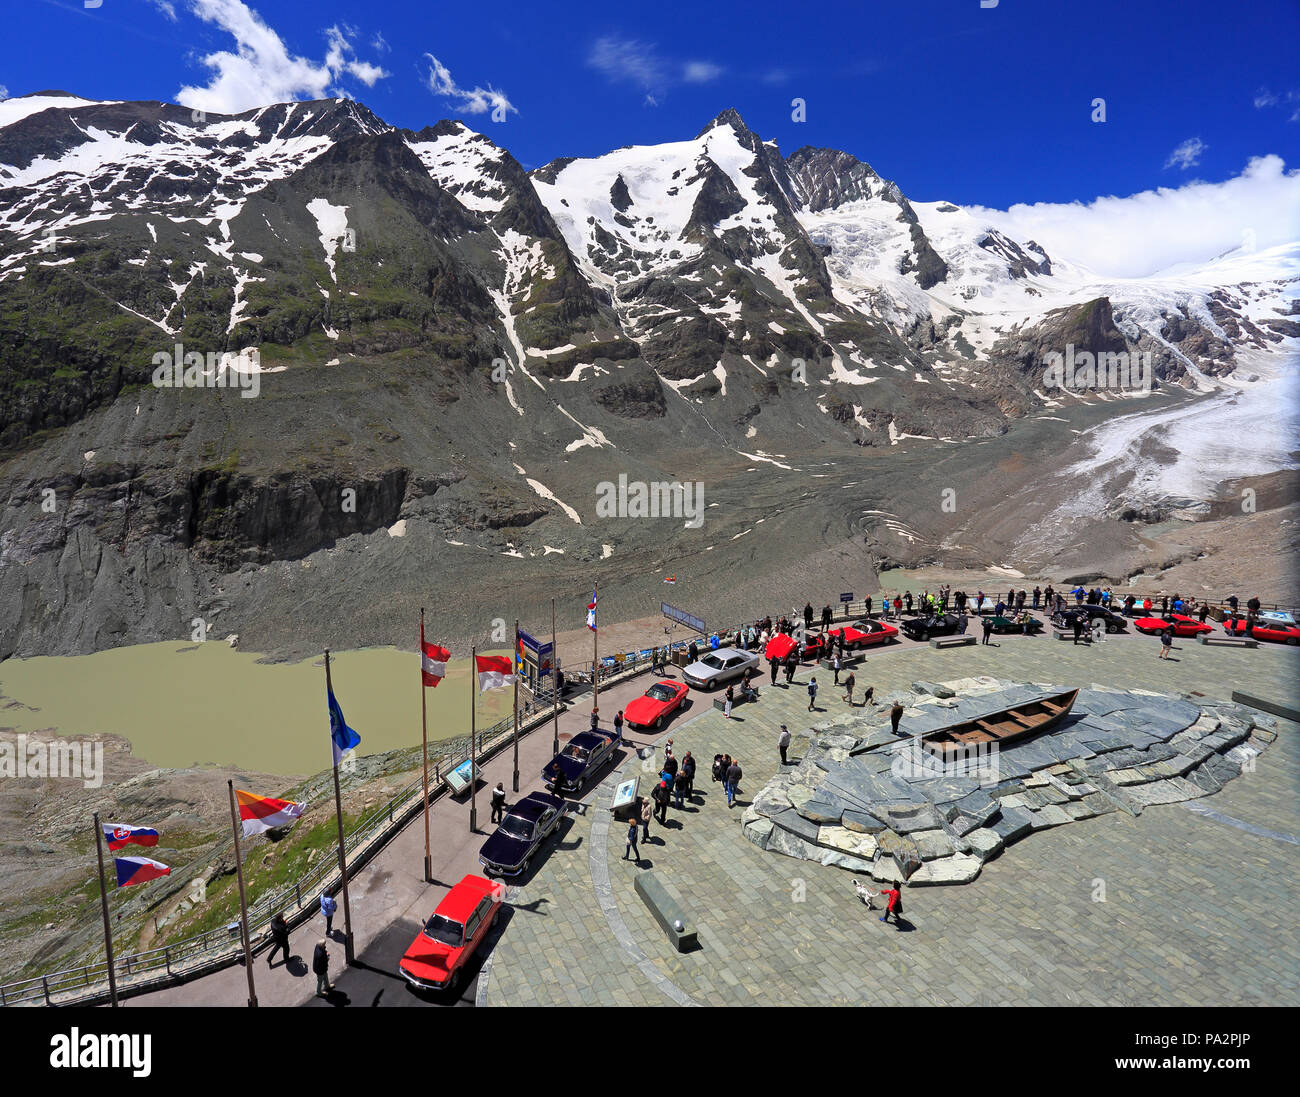 Grossglockner high alpine road and Visitor Center at Kaiser-Franz-Josefs-Hoehe, with the Pasterze Glacier is in the background - Stock Image